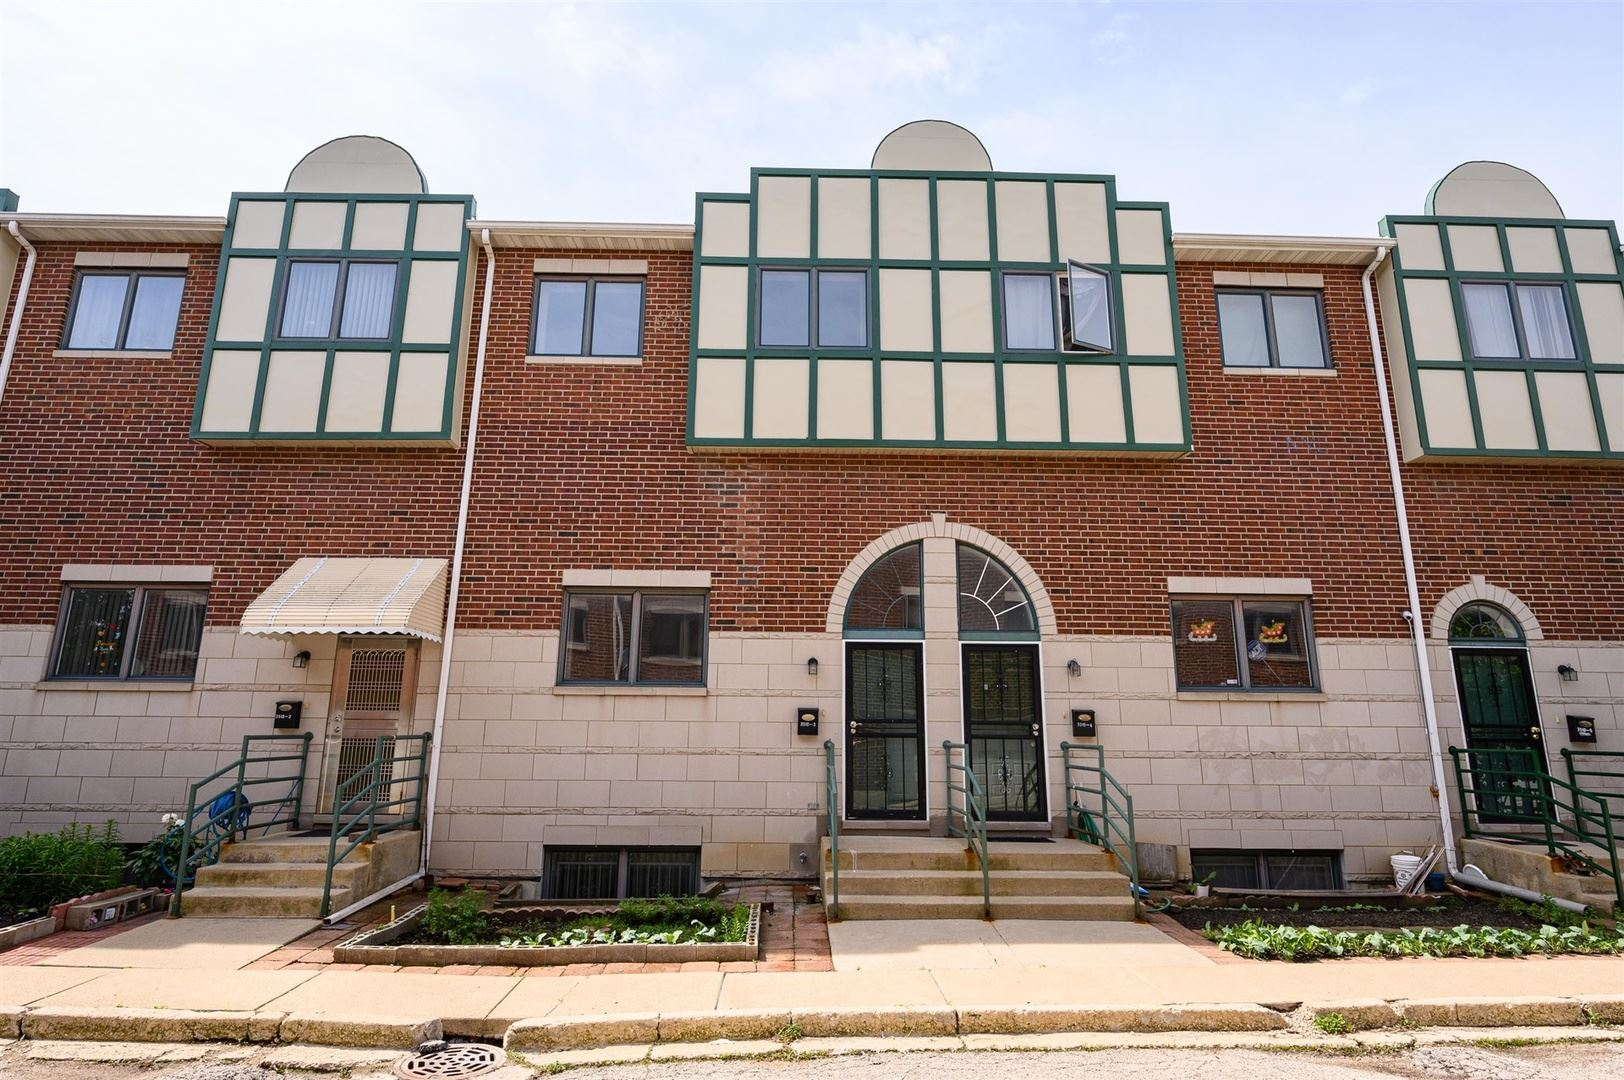 3510 S SEELEY Avenue #3, Chicago, IL 60609 - #: 10741204